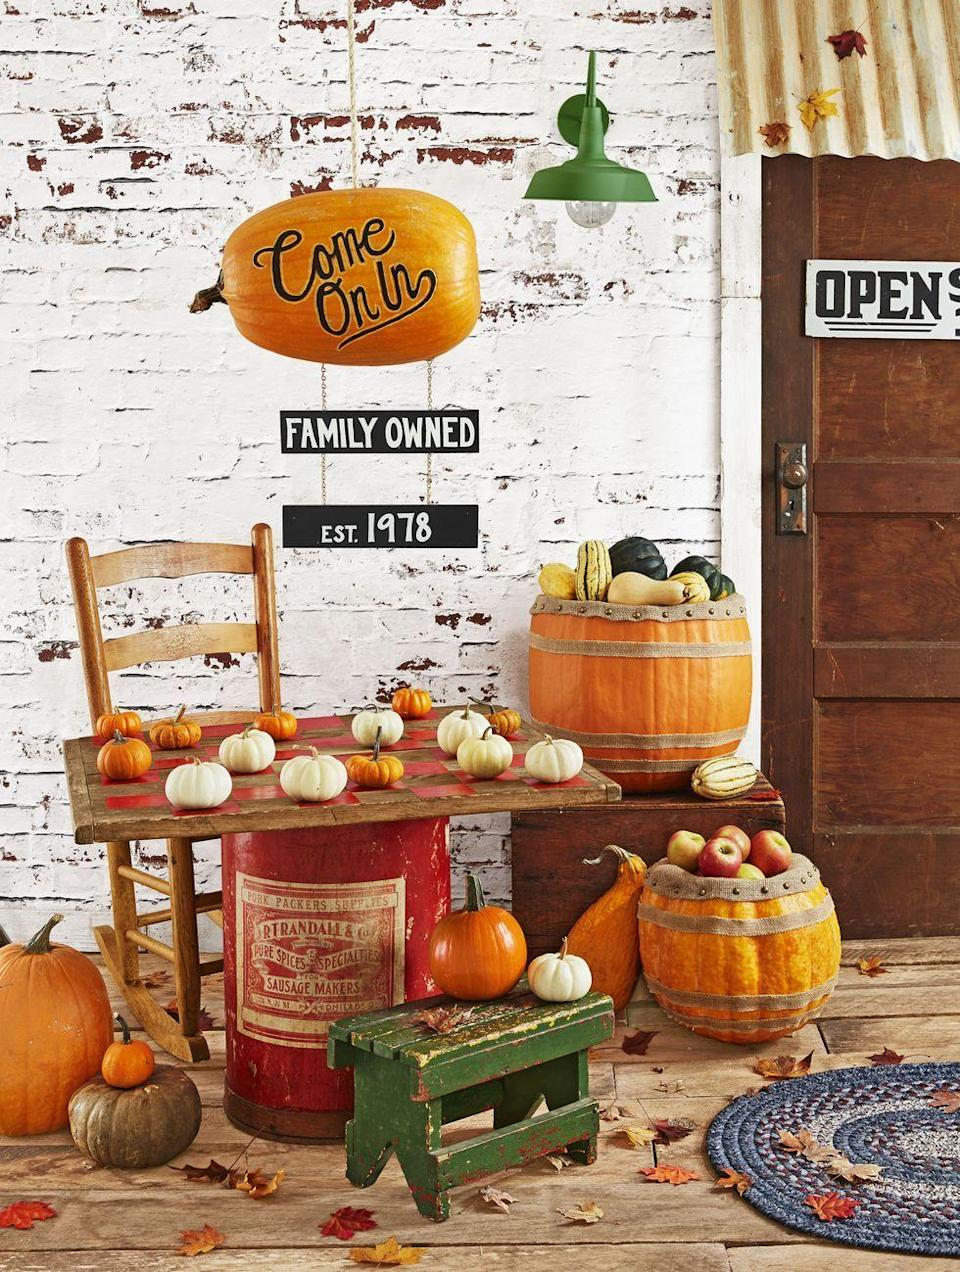 """<p>'Tis the season for <a href=""""https://www.goodhousekeeping.com/home/craft-ideas/how-to/g2257/creative-fall-craft-ideas/"""" rel=""""nofollow noopener"""" target=""""_blank"""" data-ylk=""""slk:rustic fall crafts"""" class=""""link rapid-noclick-resp"""">rustic fall crafts</a> — and this is one that you can reap the benefits of year-round. To make this checkers game, paint a board onto a slab of wood. Then, play checkers using mini gourds of different colors. </p><p><strong>RELATED: </strong><a href=""""https://www.goodhousekeeping.com/holidays/halloween-ideas/g565/halloween-party-ideas/"""" rel=""""nofollow noopener"""" target=""""_blank"""" data-ylk=""""slk:60 Spooky Ideas for Your Best Halloween Party Ever"""" class=""""link rapid-noclick-resp"""">60 Spooky Ideas for Your Best Halloween Party Ever</a></p>"""